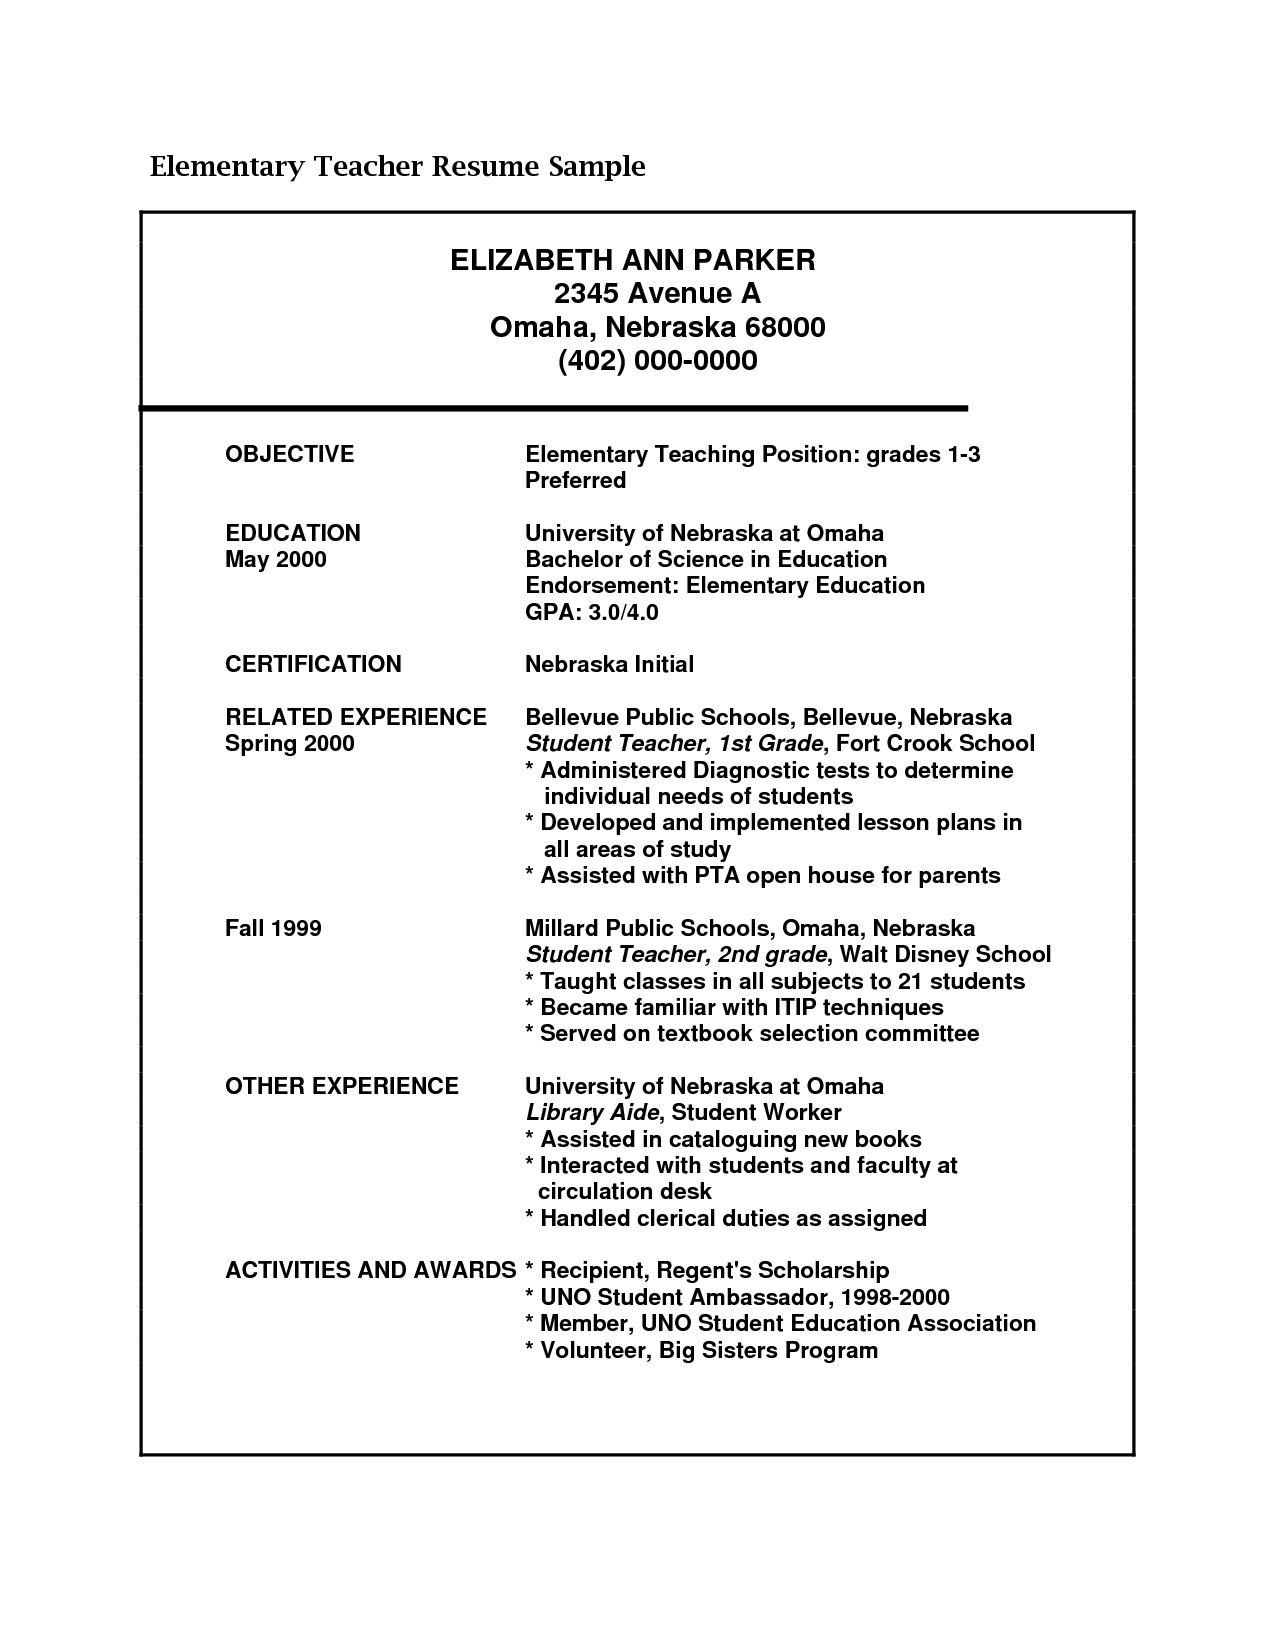 Science Teacher Resume Objective - http://www.resumecareer.info/science